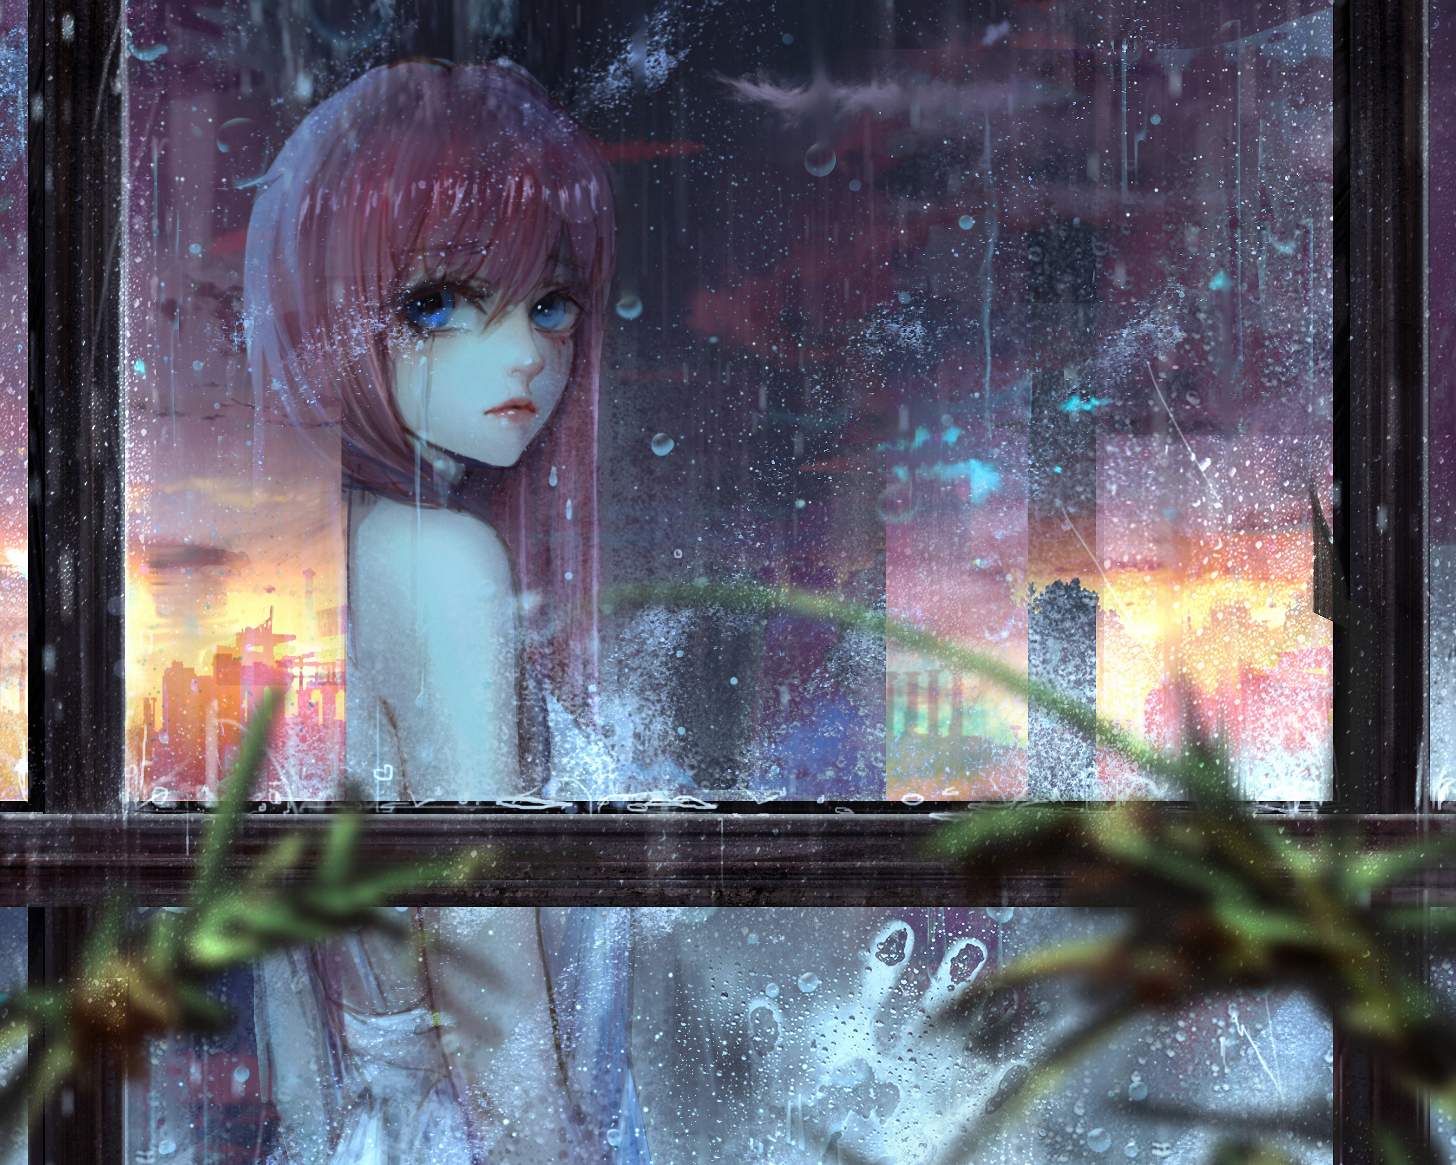 Anime girl wallpaper and background image 1456x1165 id - Anime rain wallpaper ...